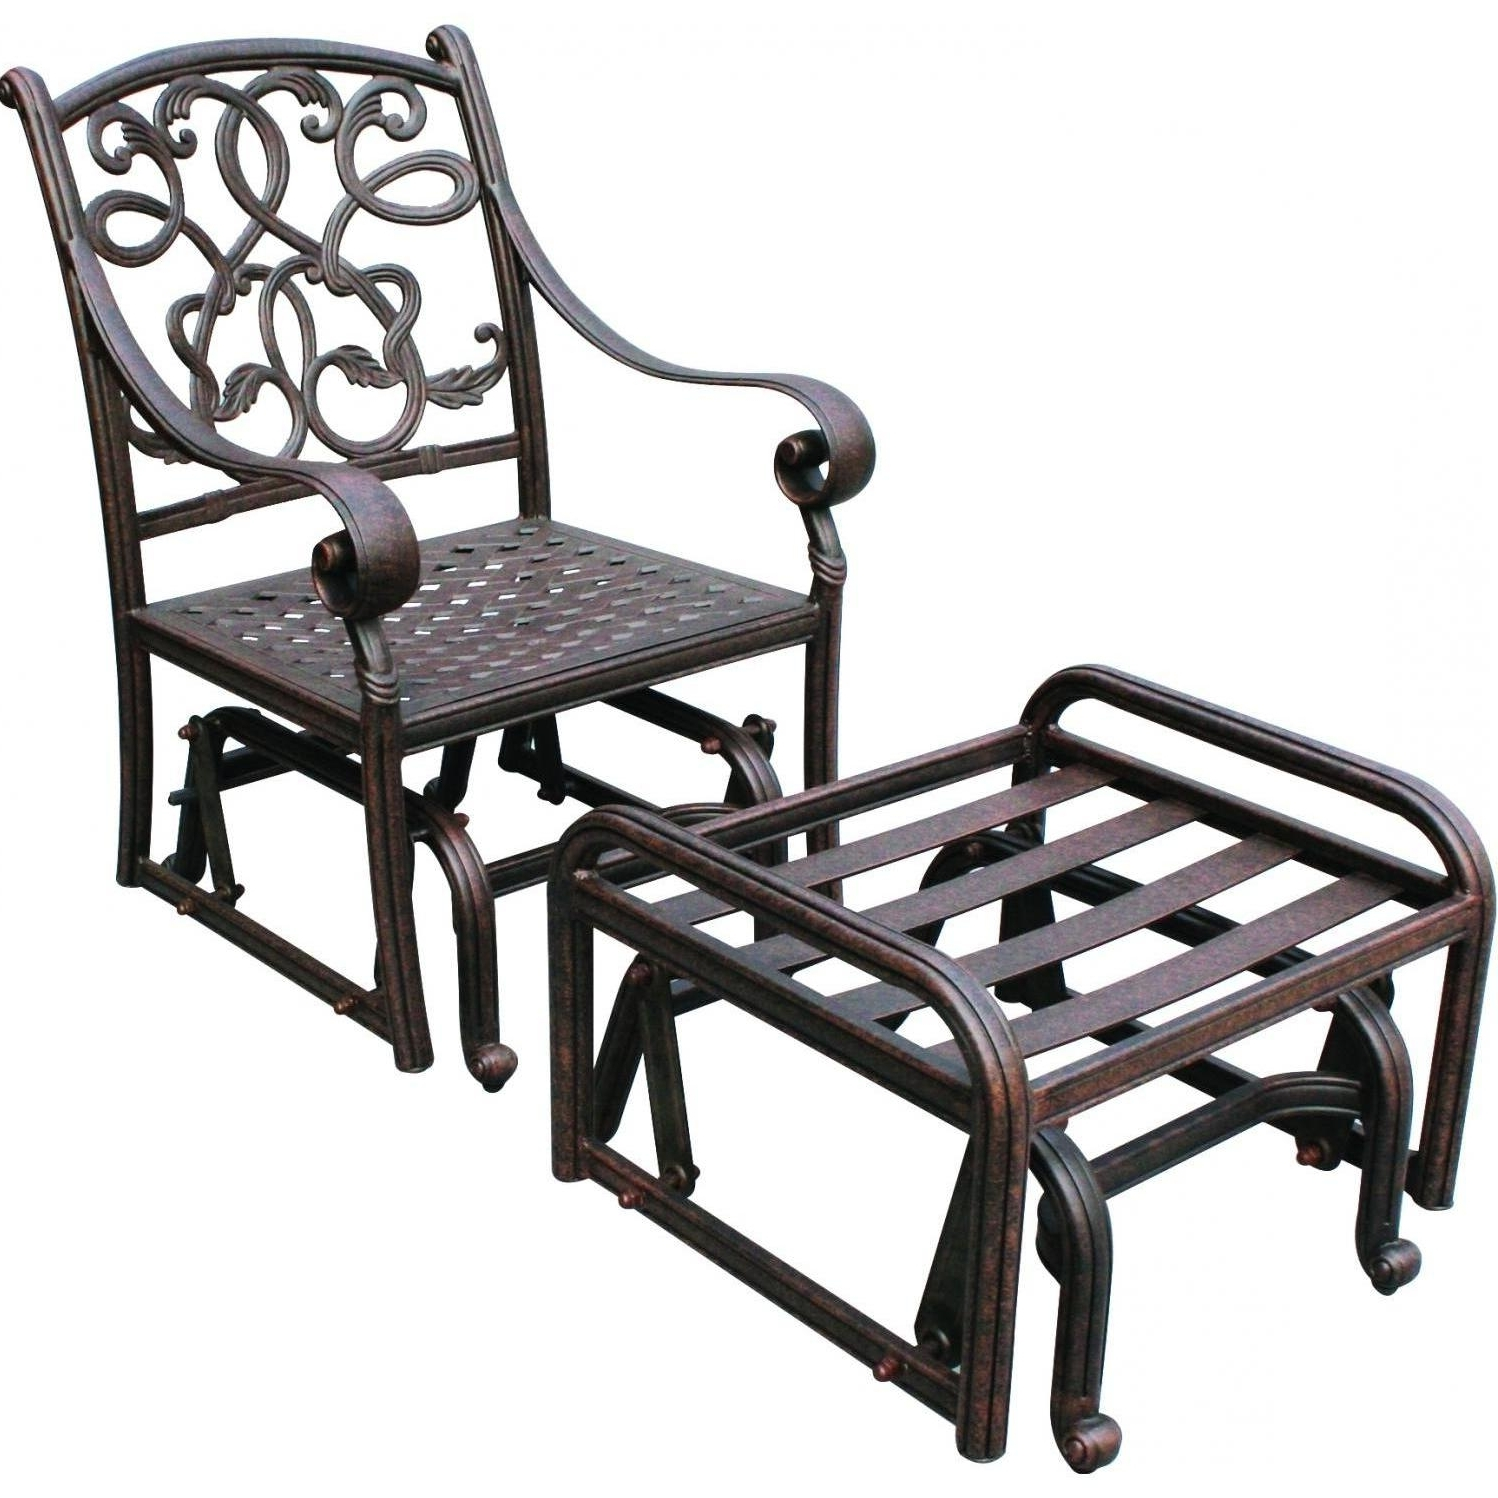 Widely Used Patio Rocking Chairs With Ottoman Throughout Chair : Rocker Plans Wicker Resin Lounge Sling Patio Furniture (View 19 of 20)